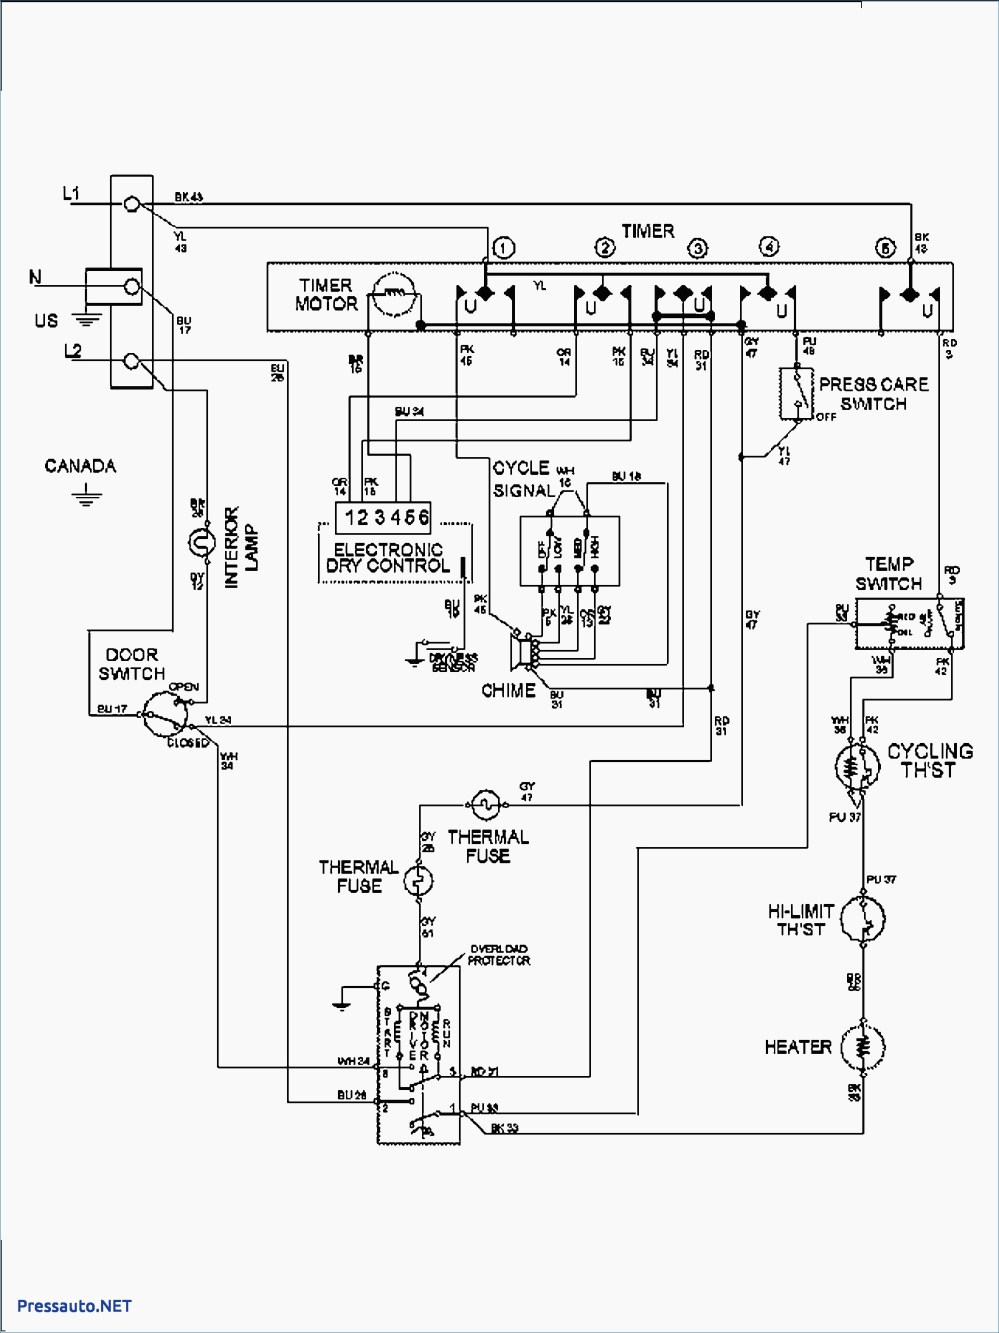 medium resolution of roper wiring diagram wiring diagrams roper dryer red4440vq1 wiring diagram roper wiring diagram